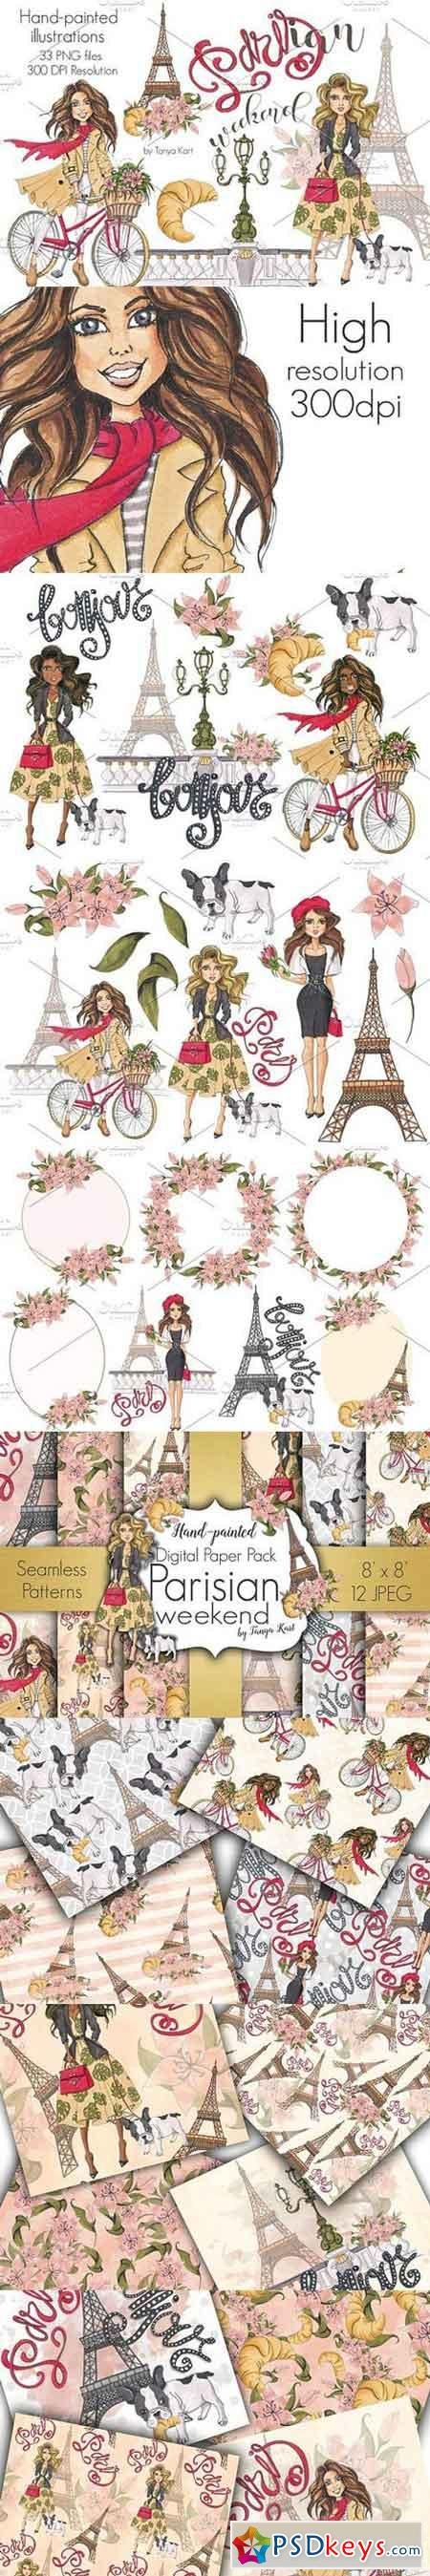 Parisian Weekend Design Kit 1383336